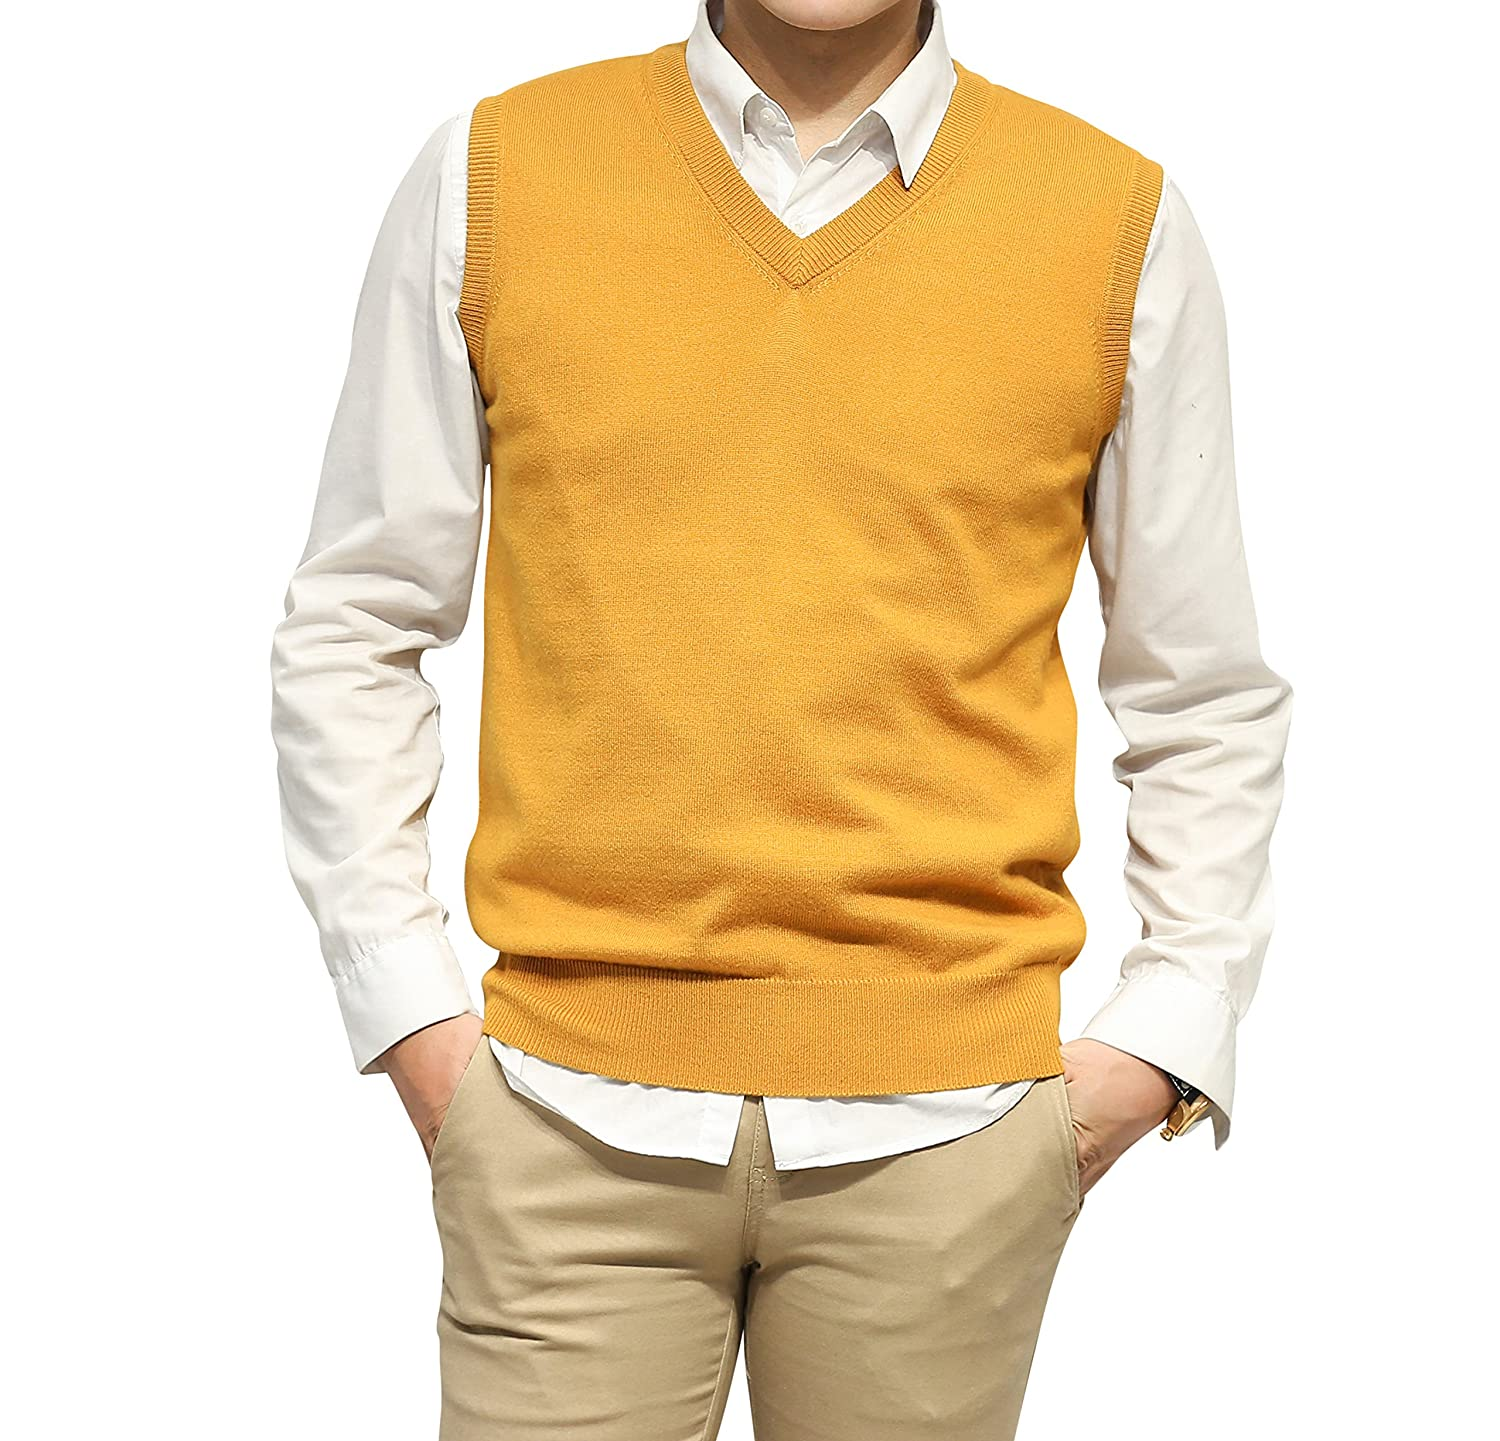 LongMing Men 's Cashmere V-Neck Sleeveless Sweater Vest at Amazon ...